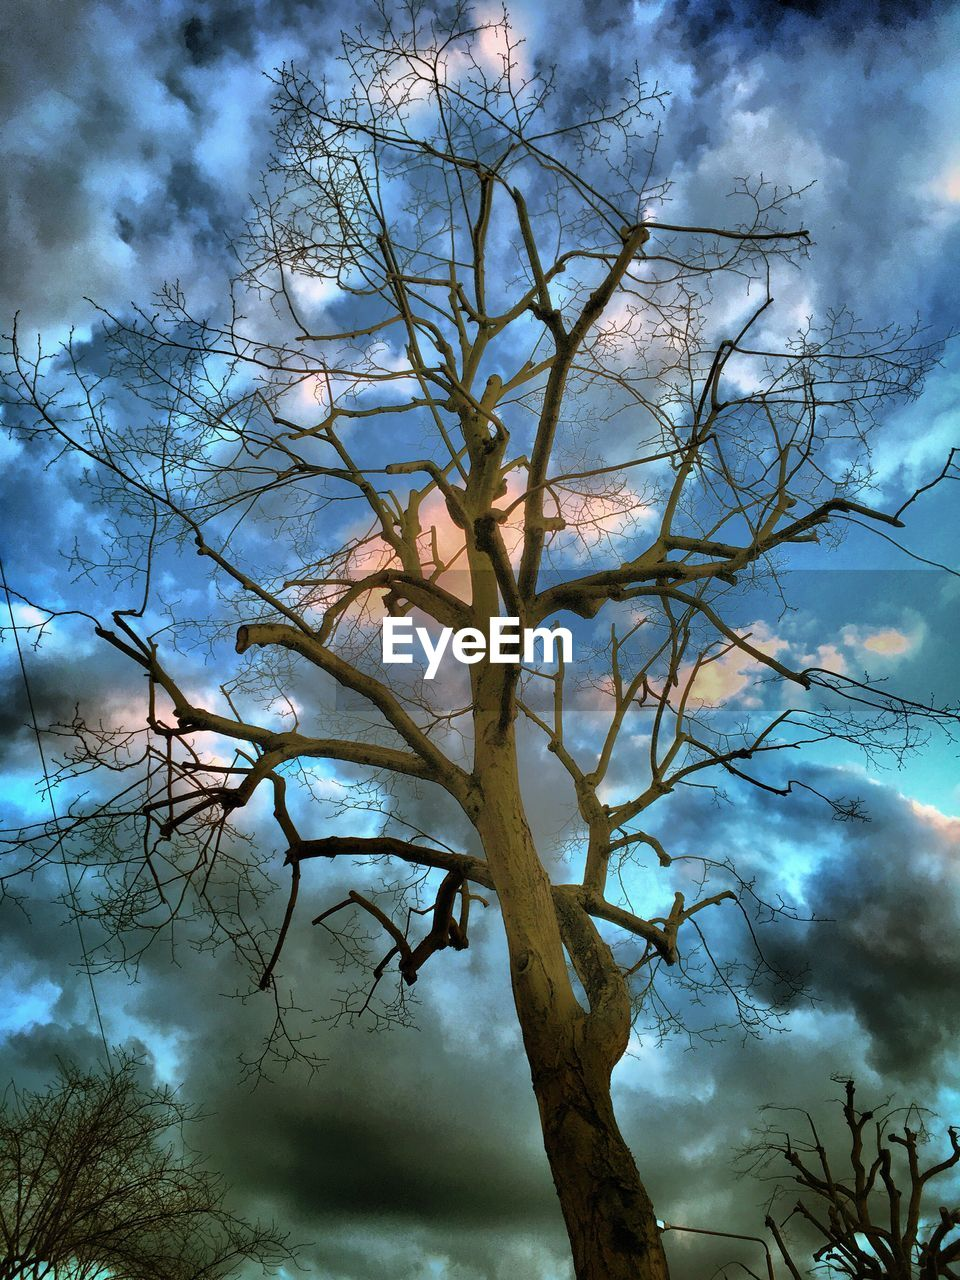 tree, branch, sky, nature, cloud - sky, low angle view, beauty in nature, bare tree, outdoors, no people, day, growth, tranquility, scenics